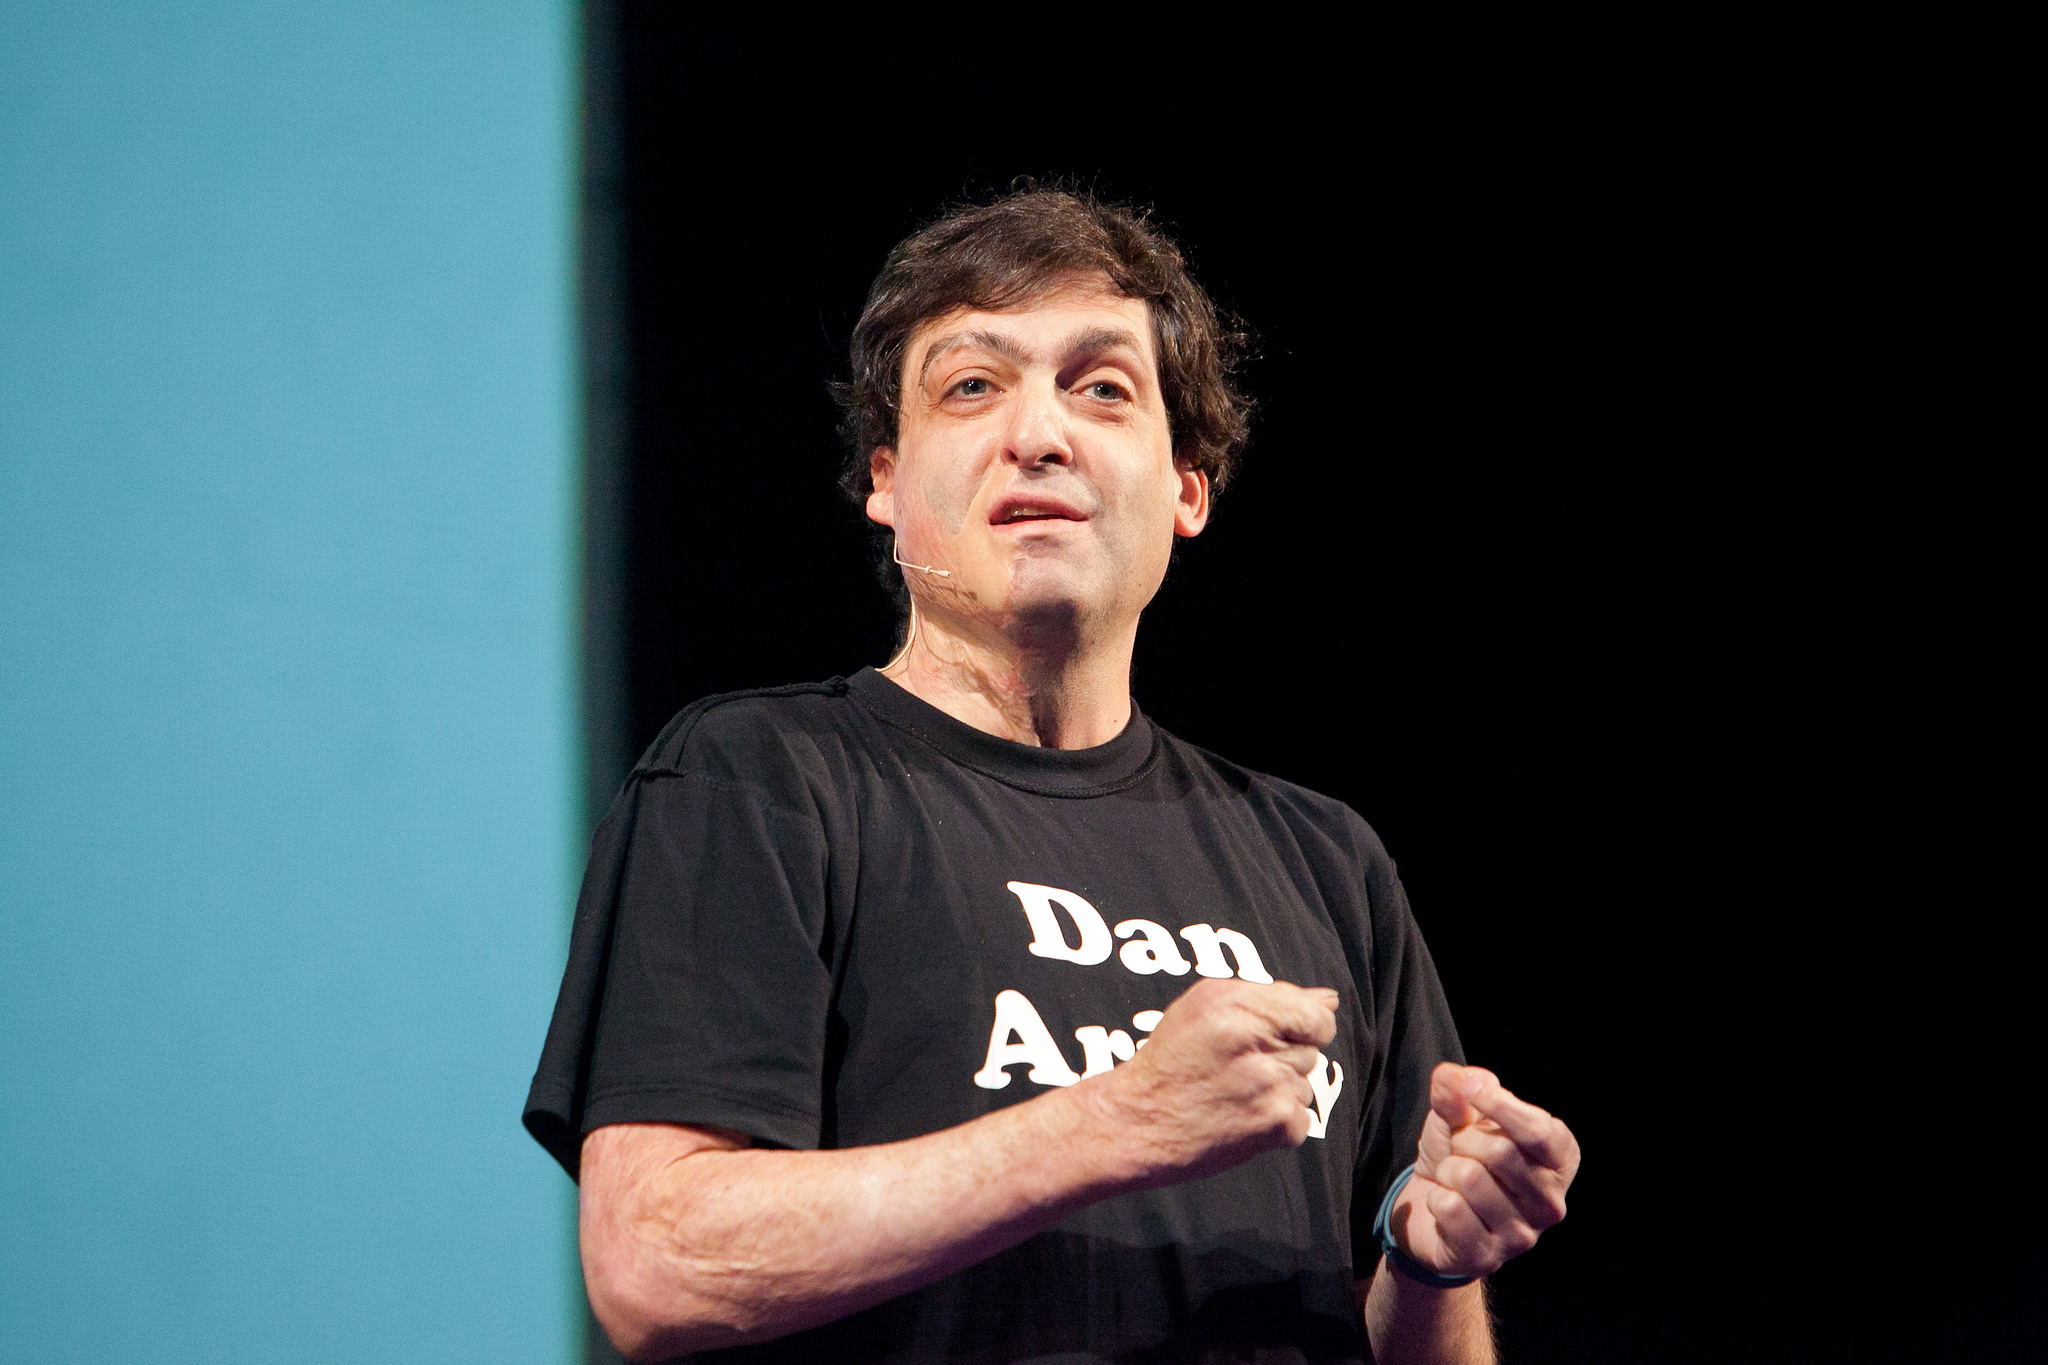 Dan Ariely plays with toys